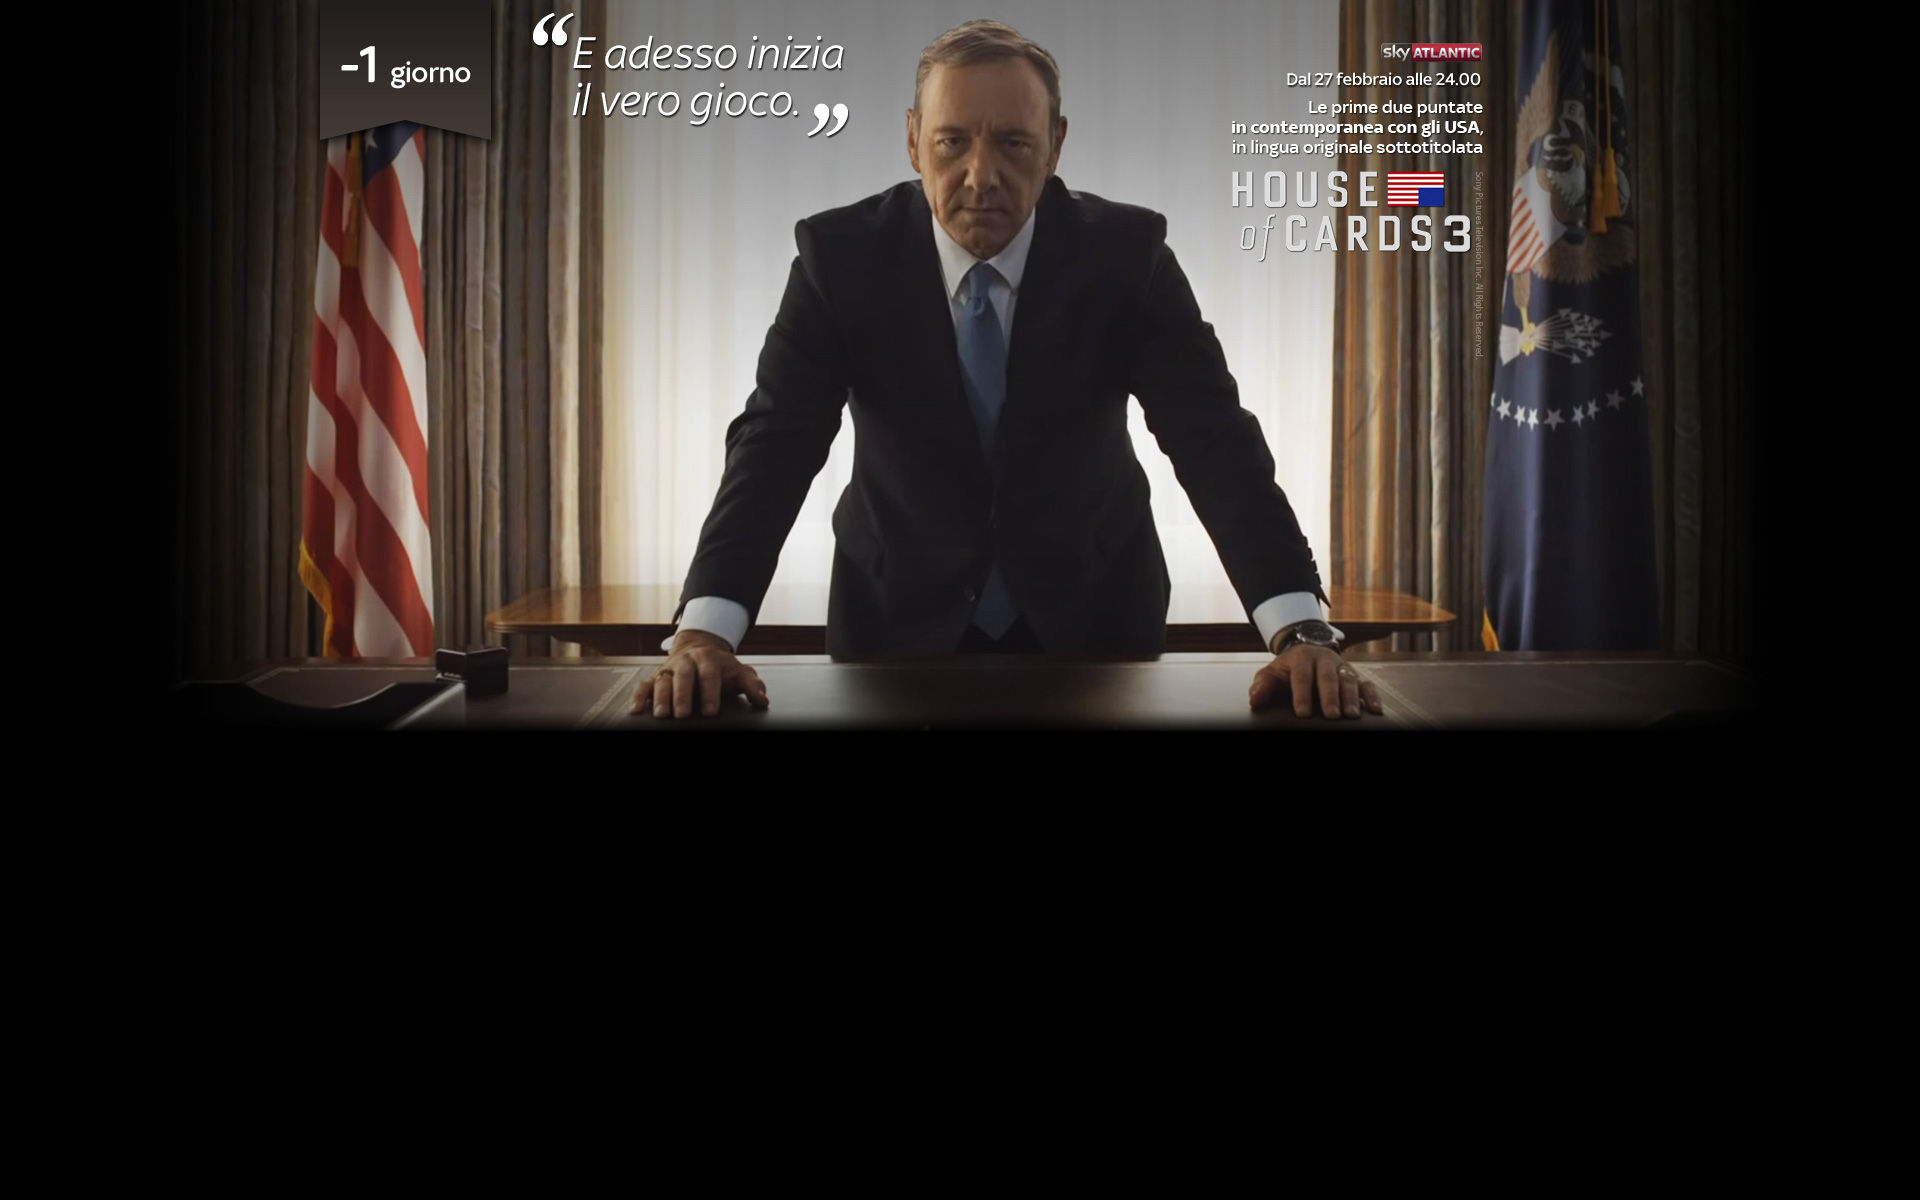 House of Cards 3 Sky Online